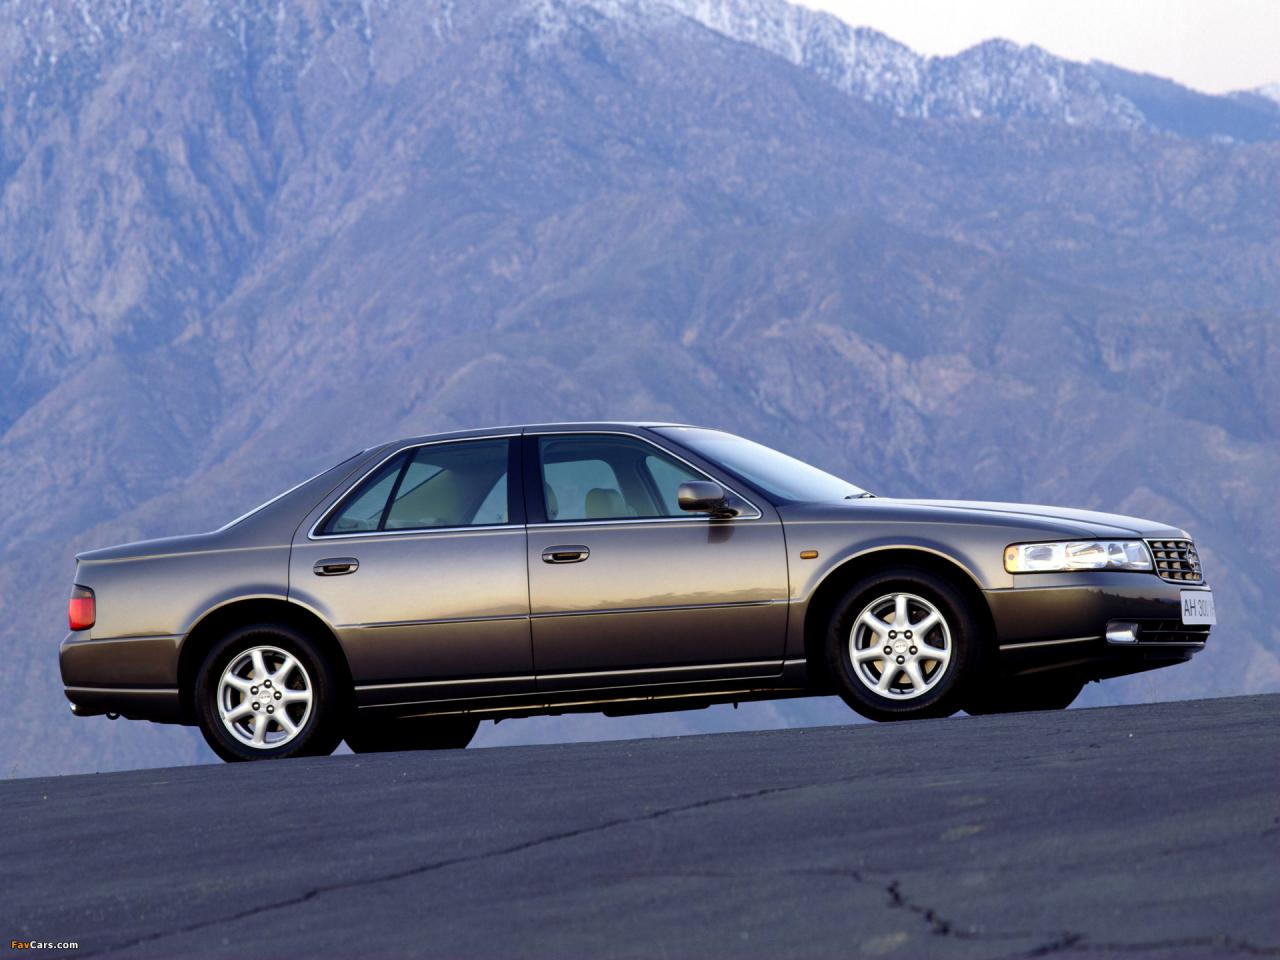 2004 cadillac seville information and photos zombiedrive. Black Bedroom Furniture Sets. Home Design Ideas